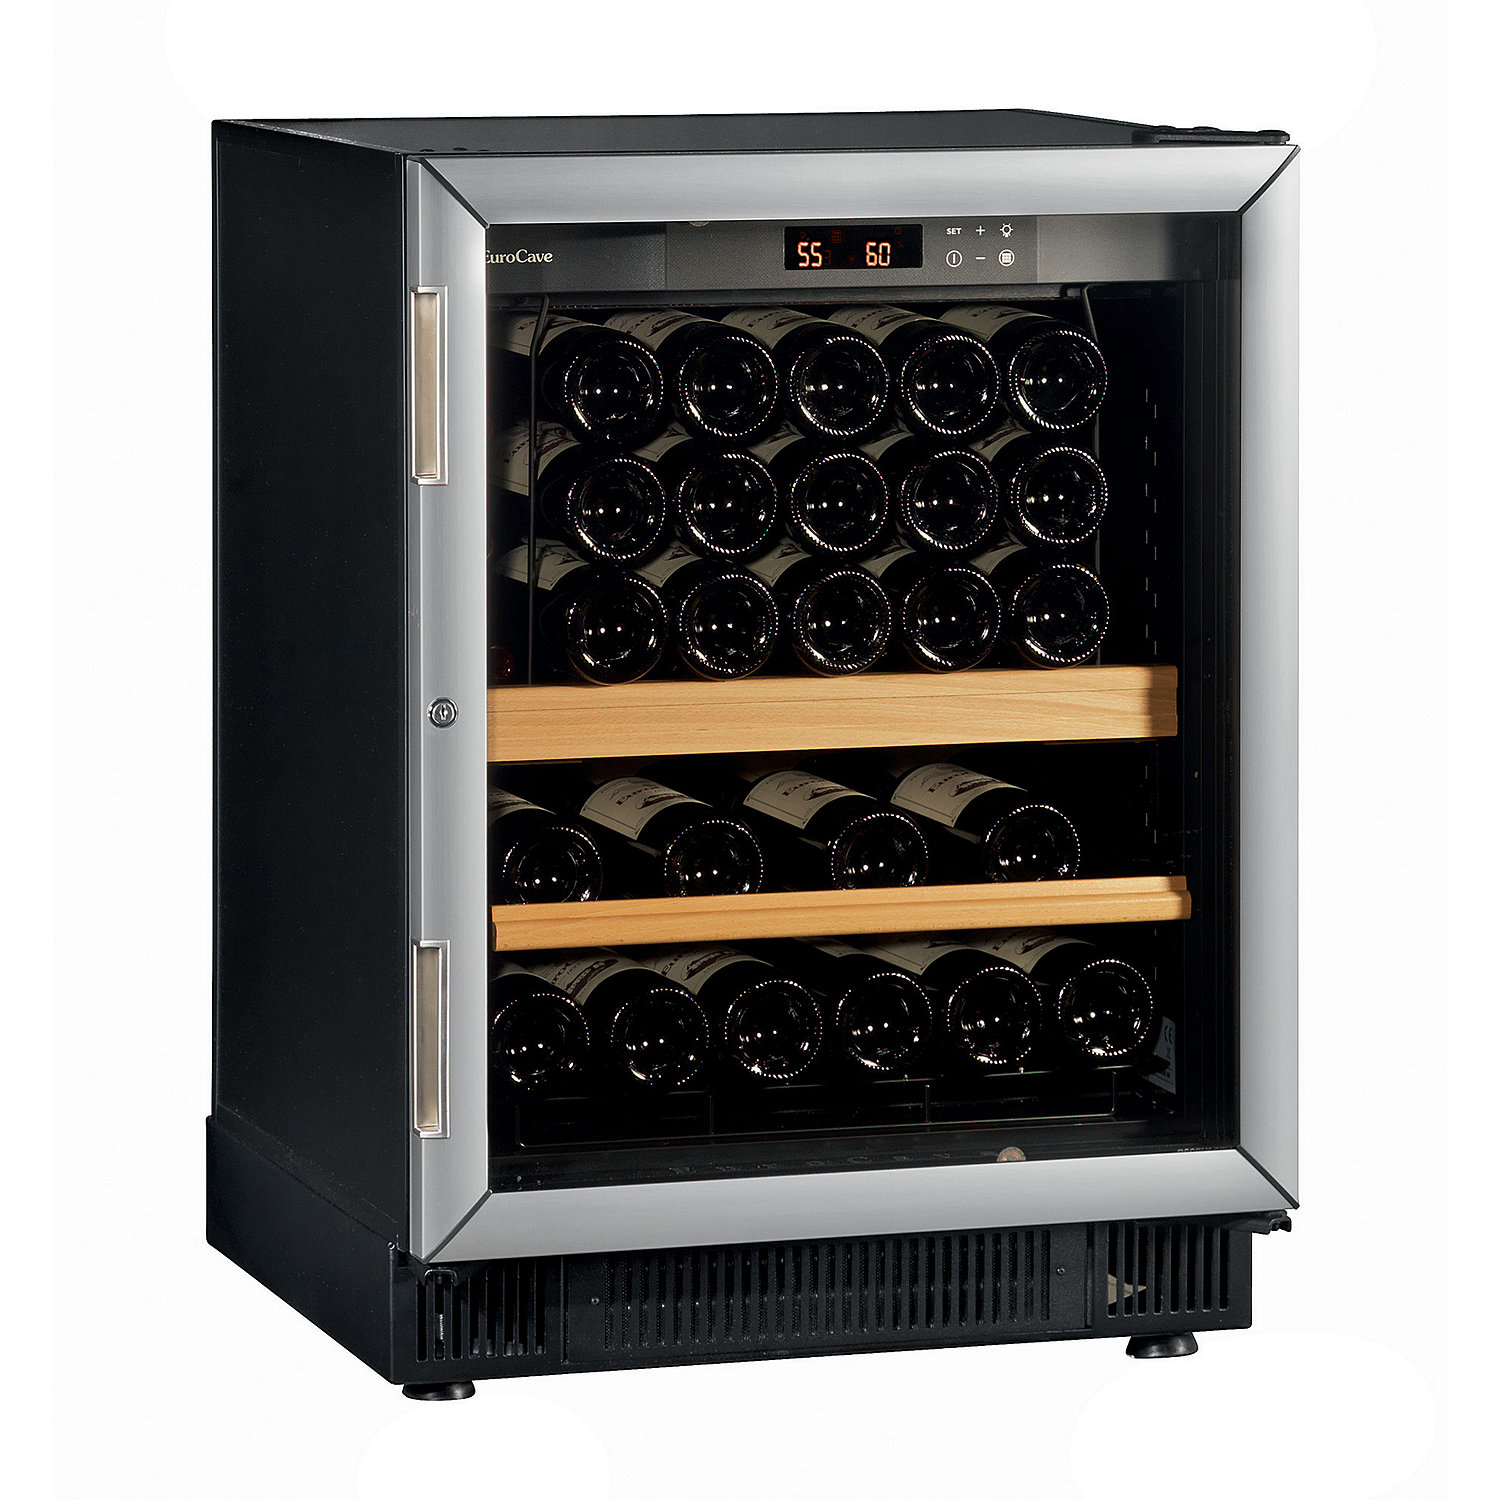 Artevino Reviews Furniture Outstanding Eurocave For Wine Storage Ideas